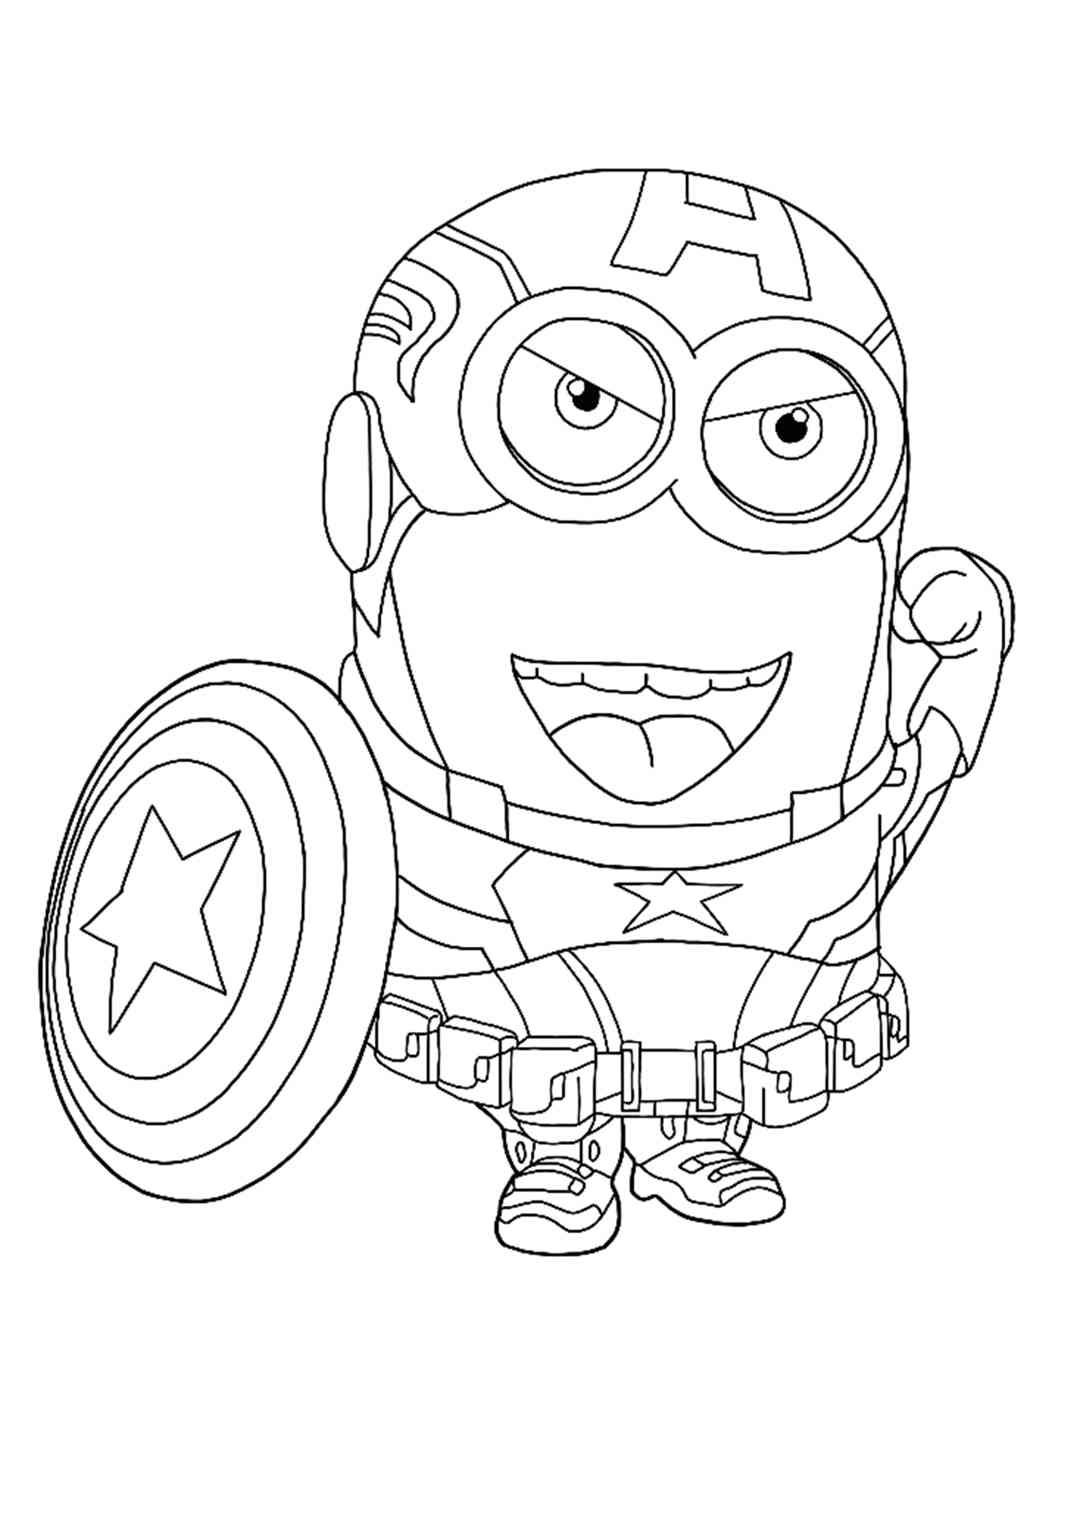 Minion Captain America Coloring Page Minion Coloring Pages Avengers Coloring Pages Minions Coloring Pages